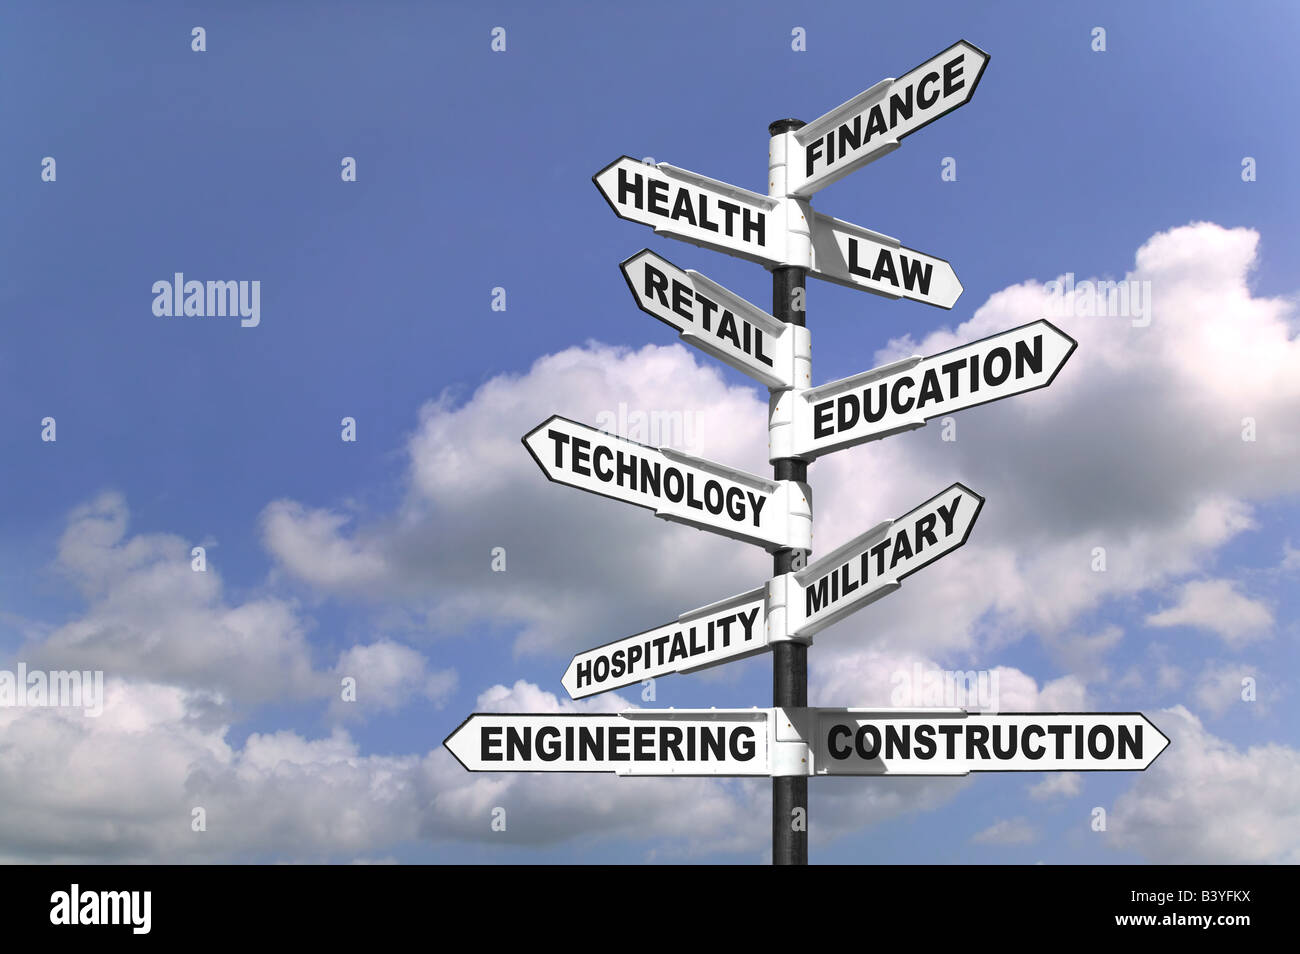 Concept image of a signpost showing the way to ten different career paths - Stock Image